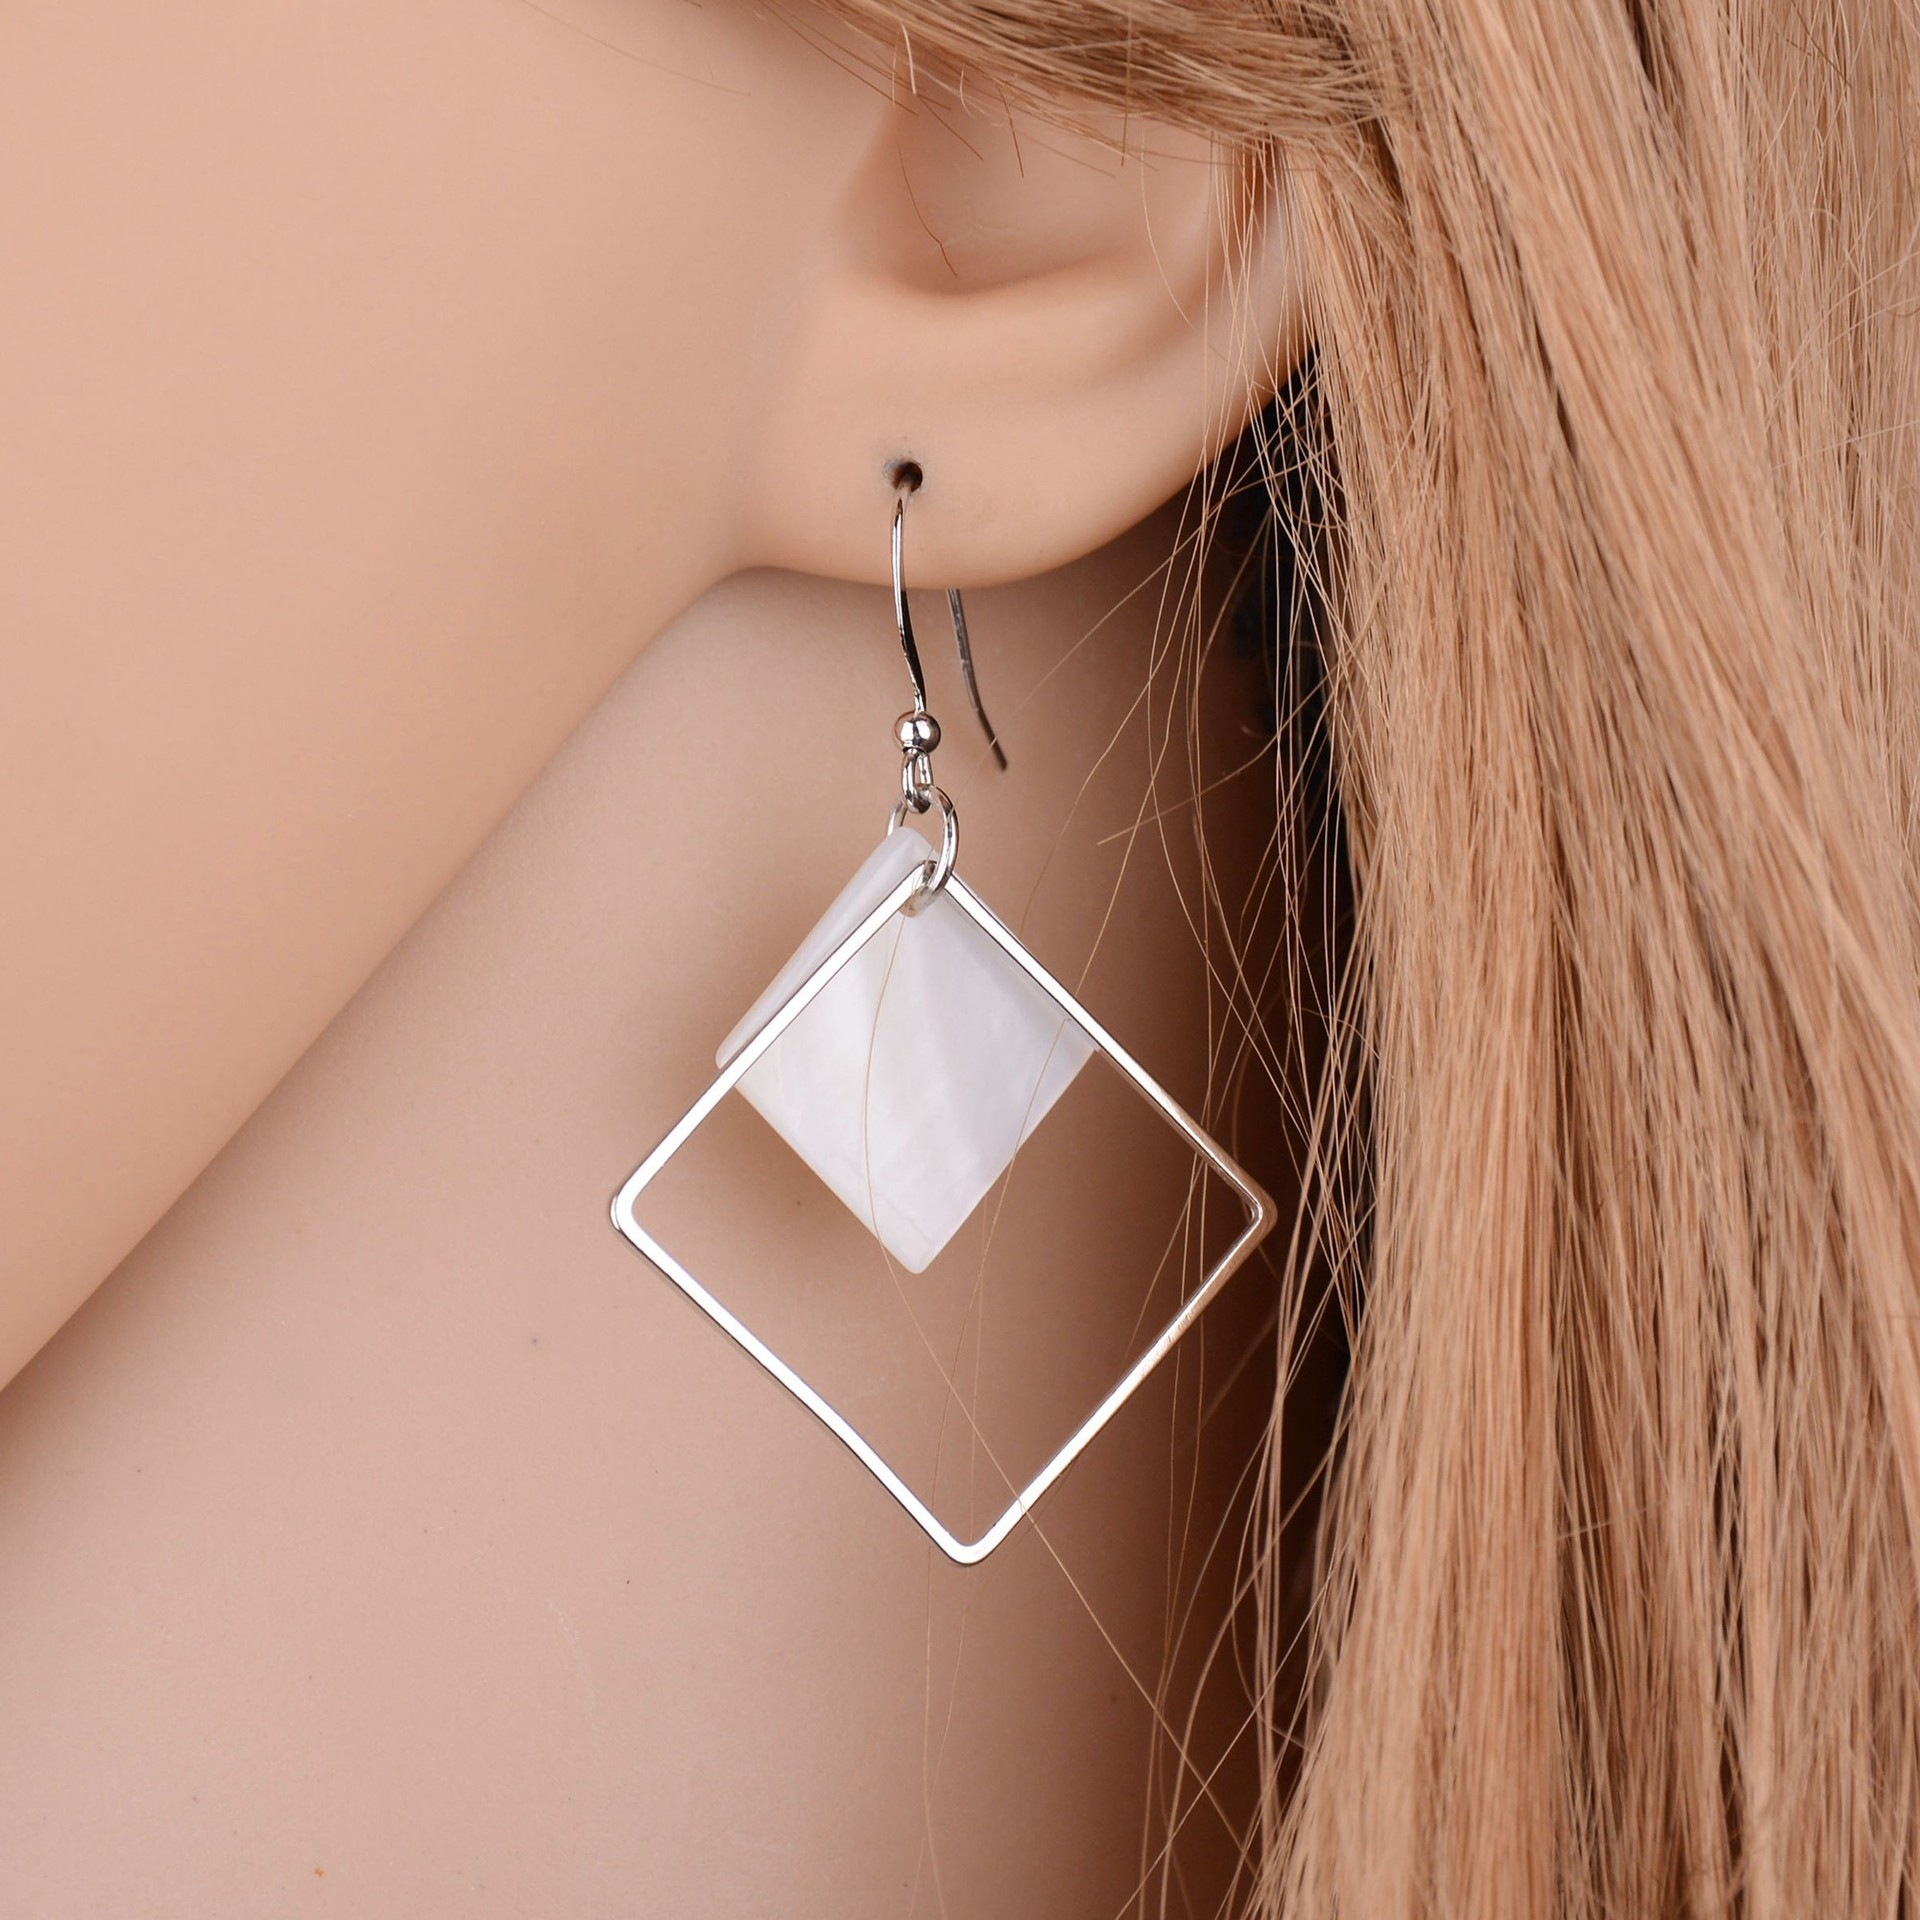 Minimalist Punk Wholesale Love Square White Shell Drop Earrings For Women Earings Jewelry Wedding Geometric Oorbellen